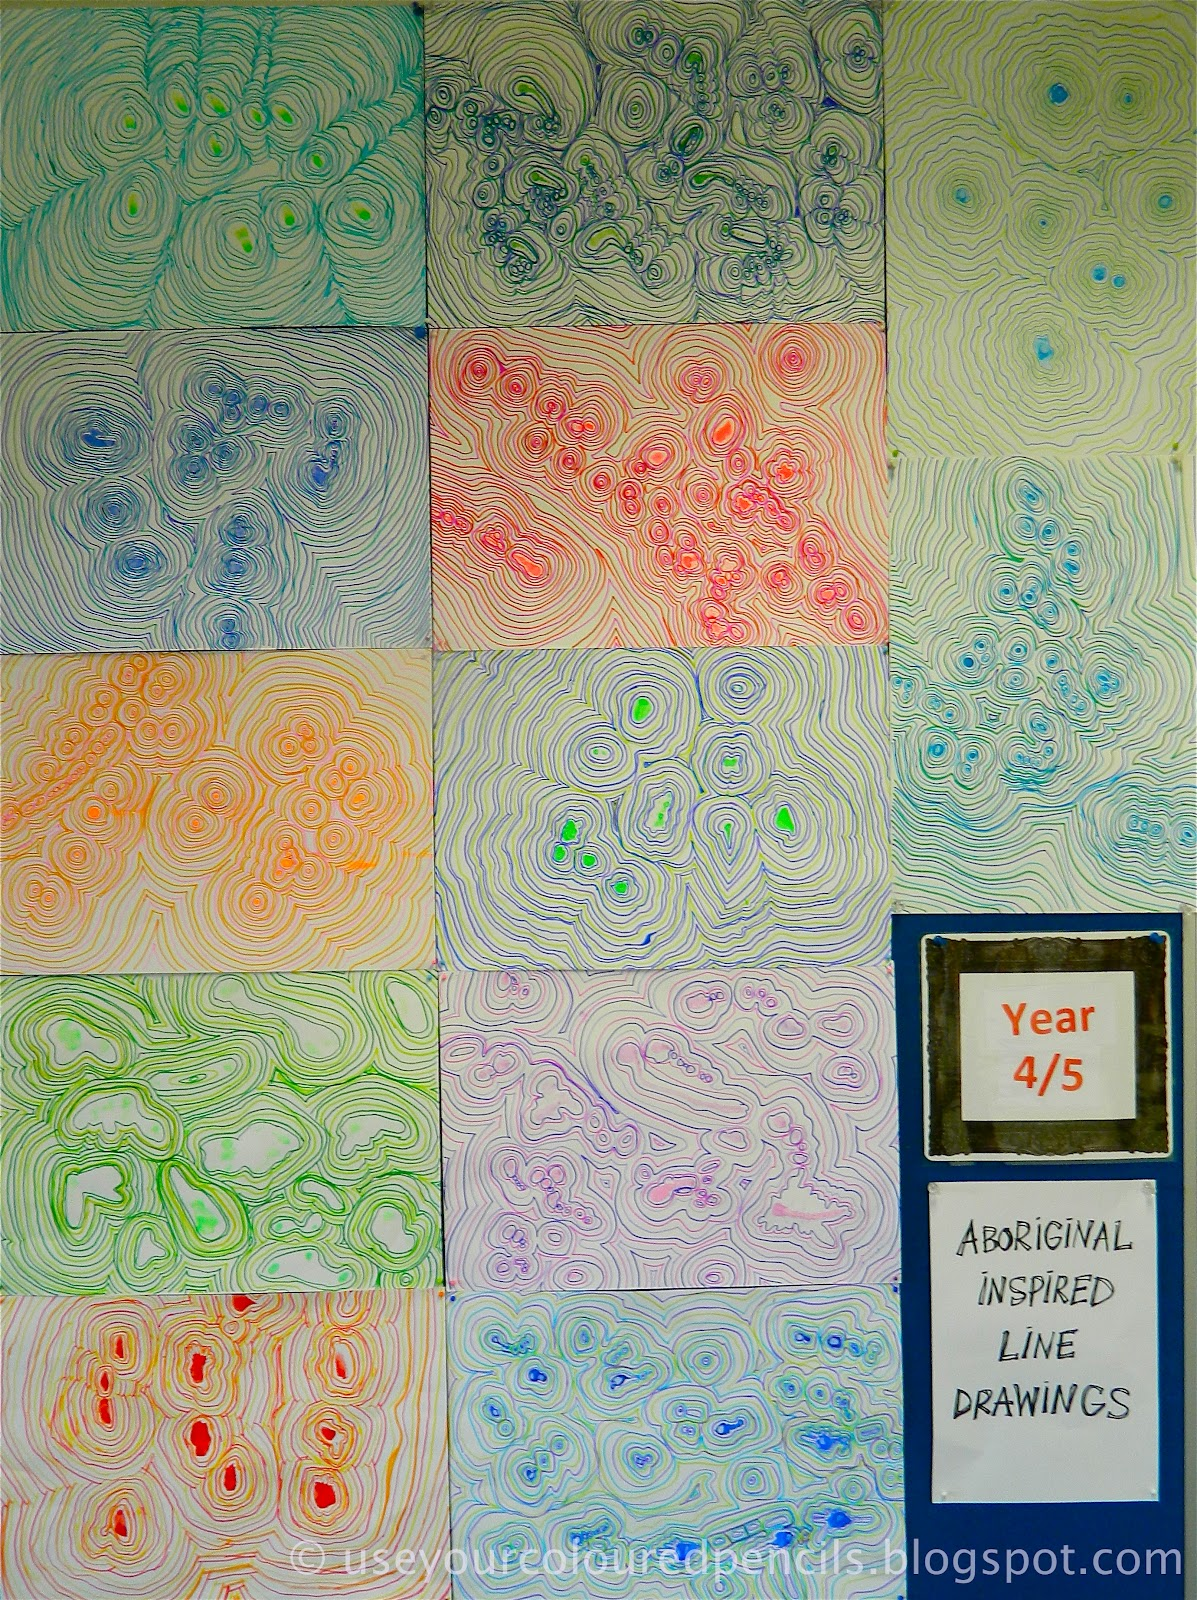 use your coloured pencils aboriginal inspired line drawings